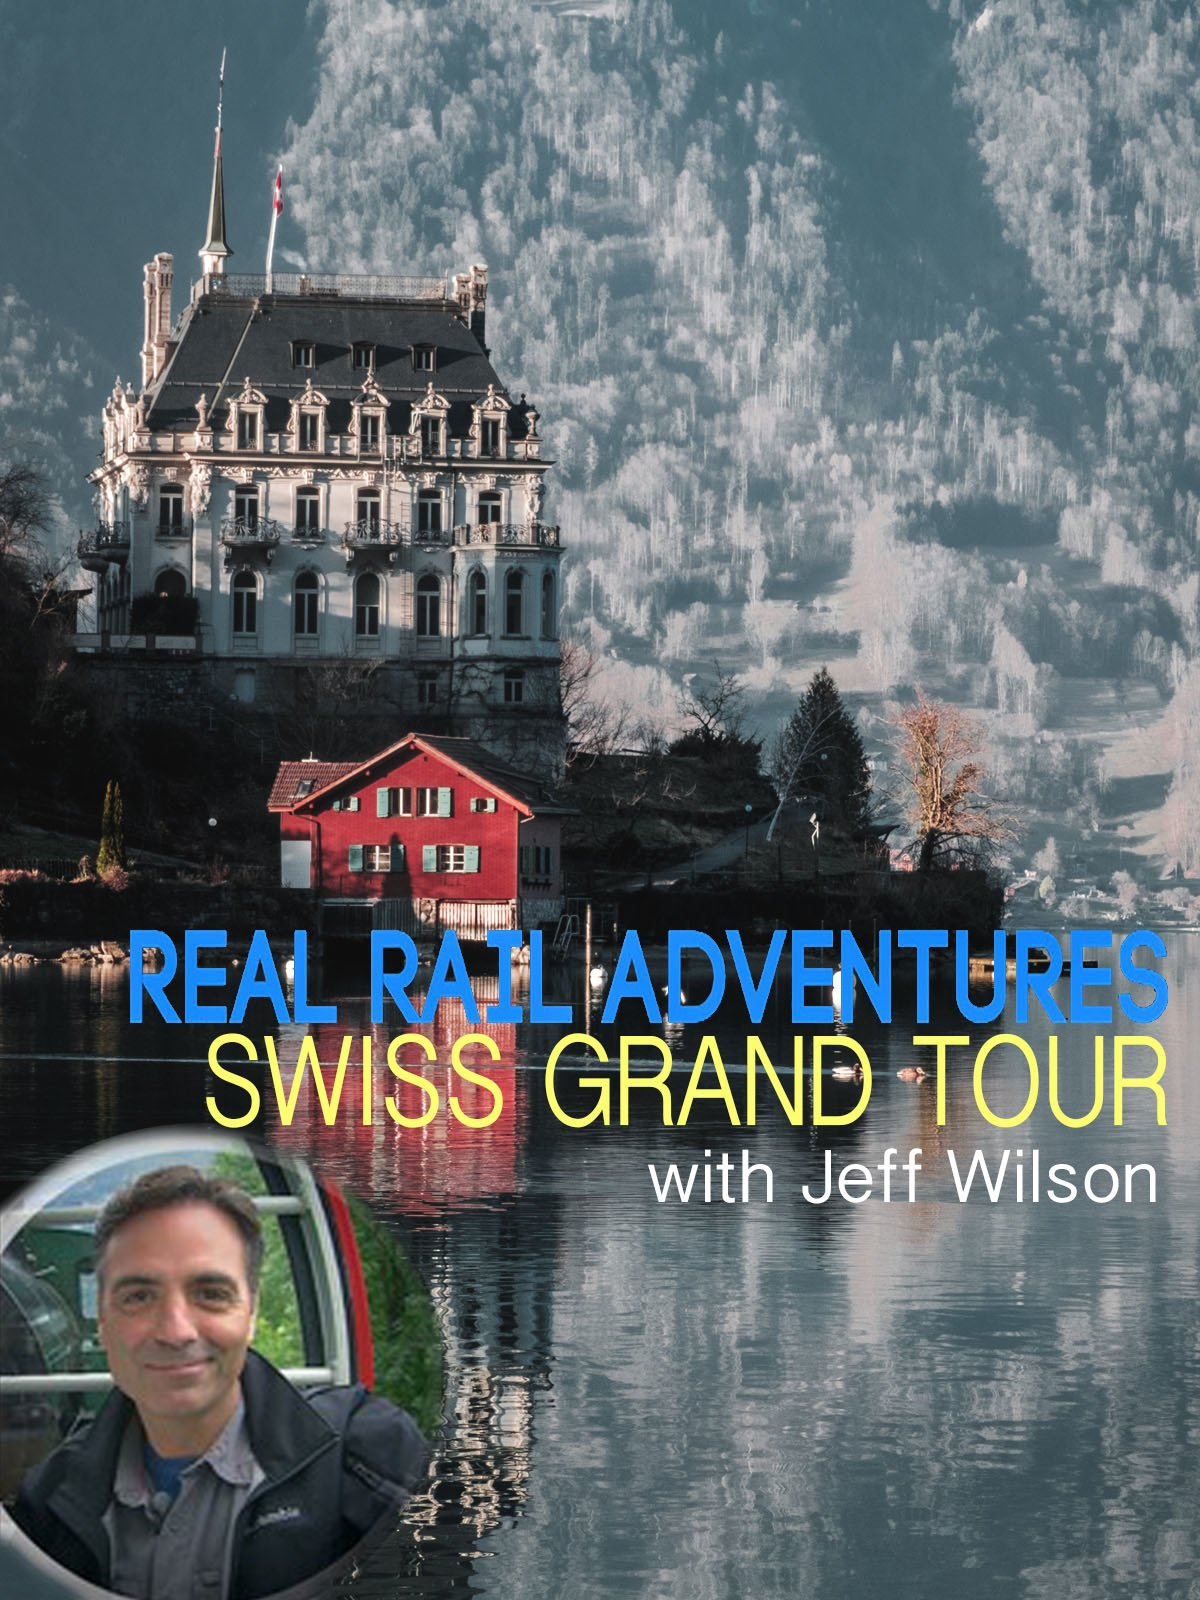 Real Rail Adventures: Swiss Grand Tour